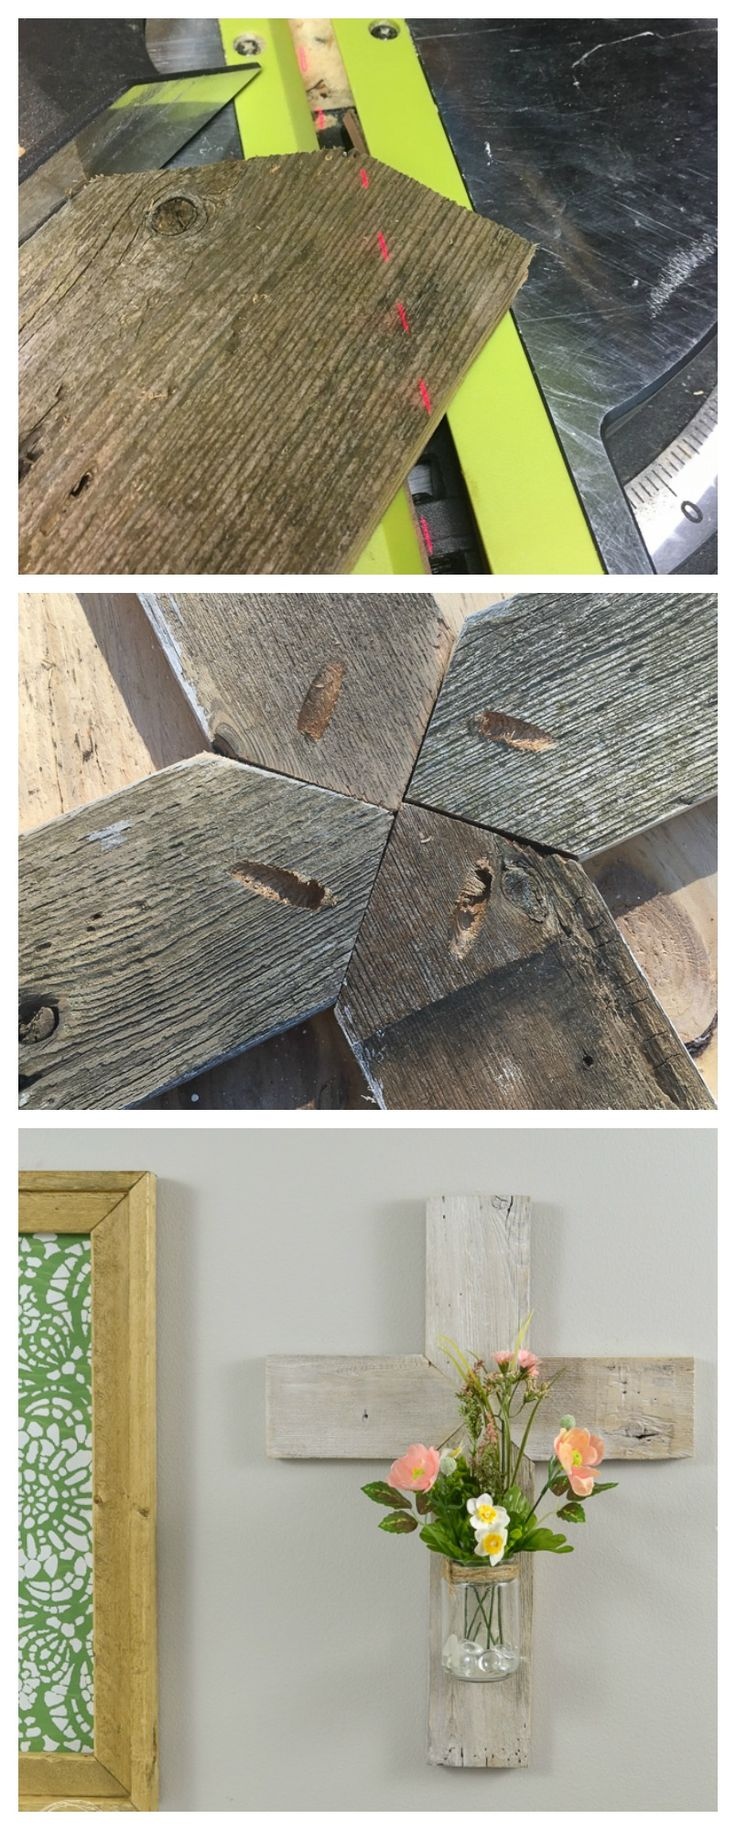 Unfinished wooden crosses for crafts - Rustic Whitewashed Wooden Cross